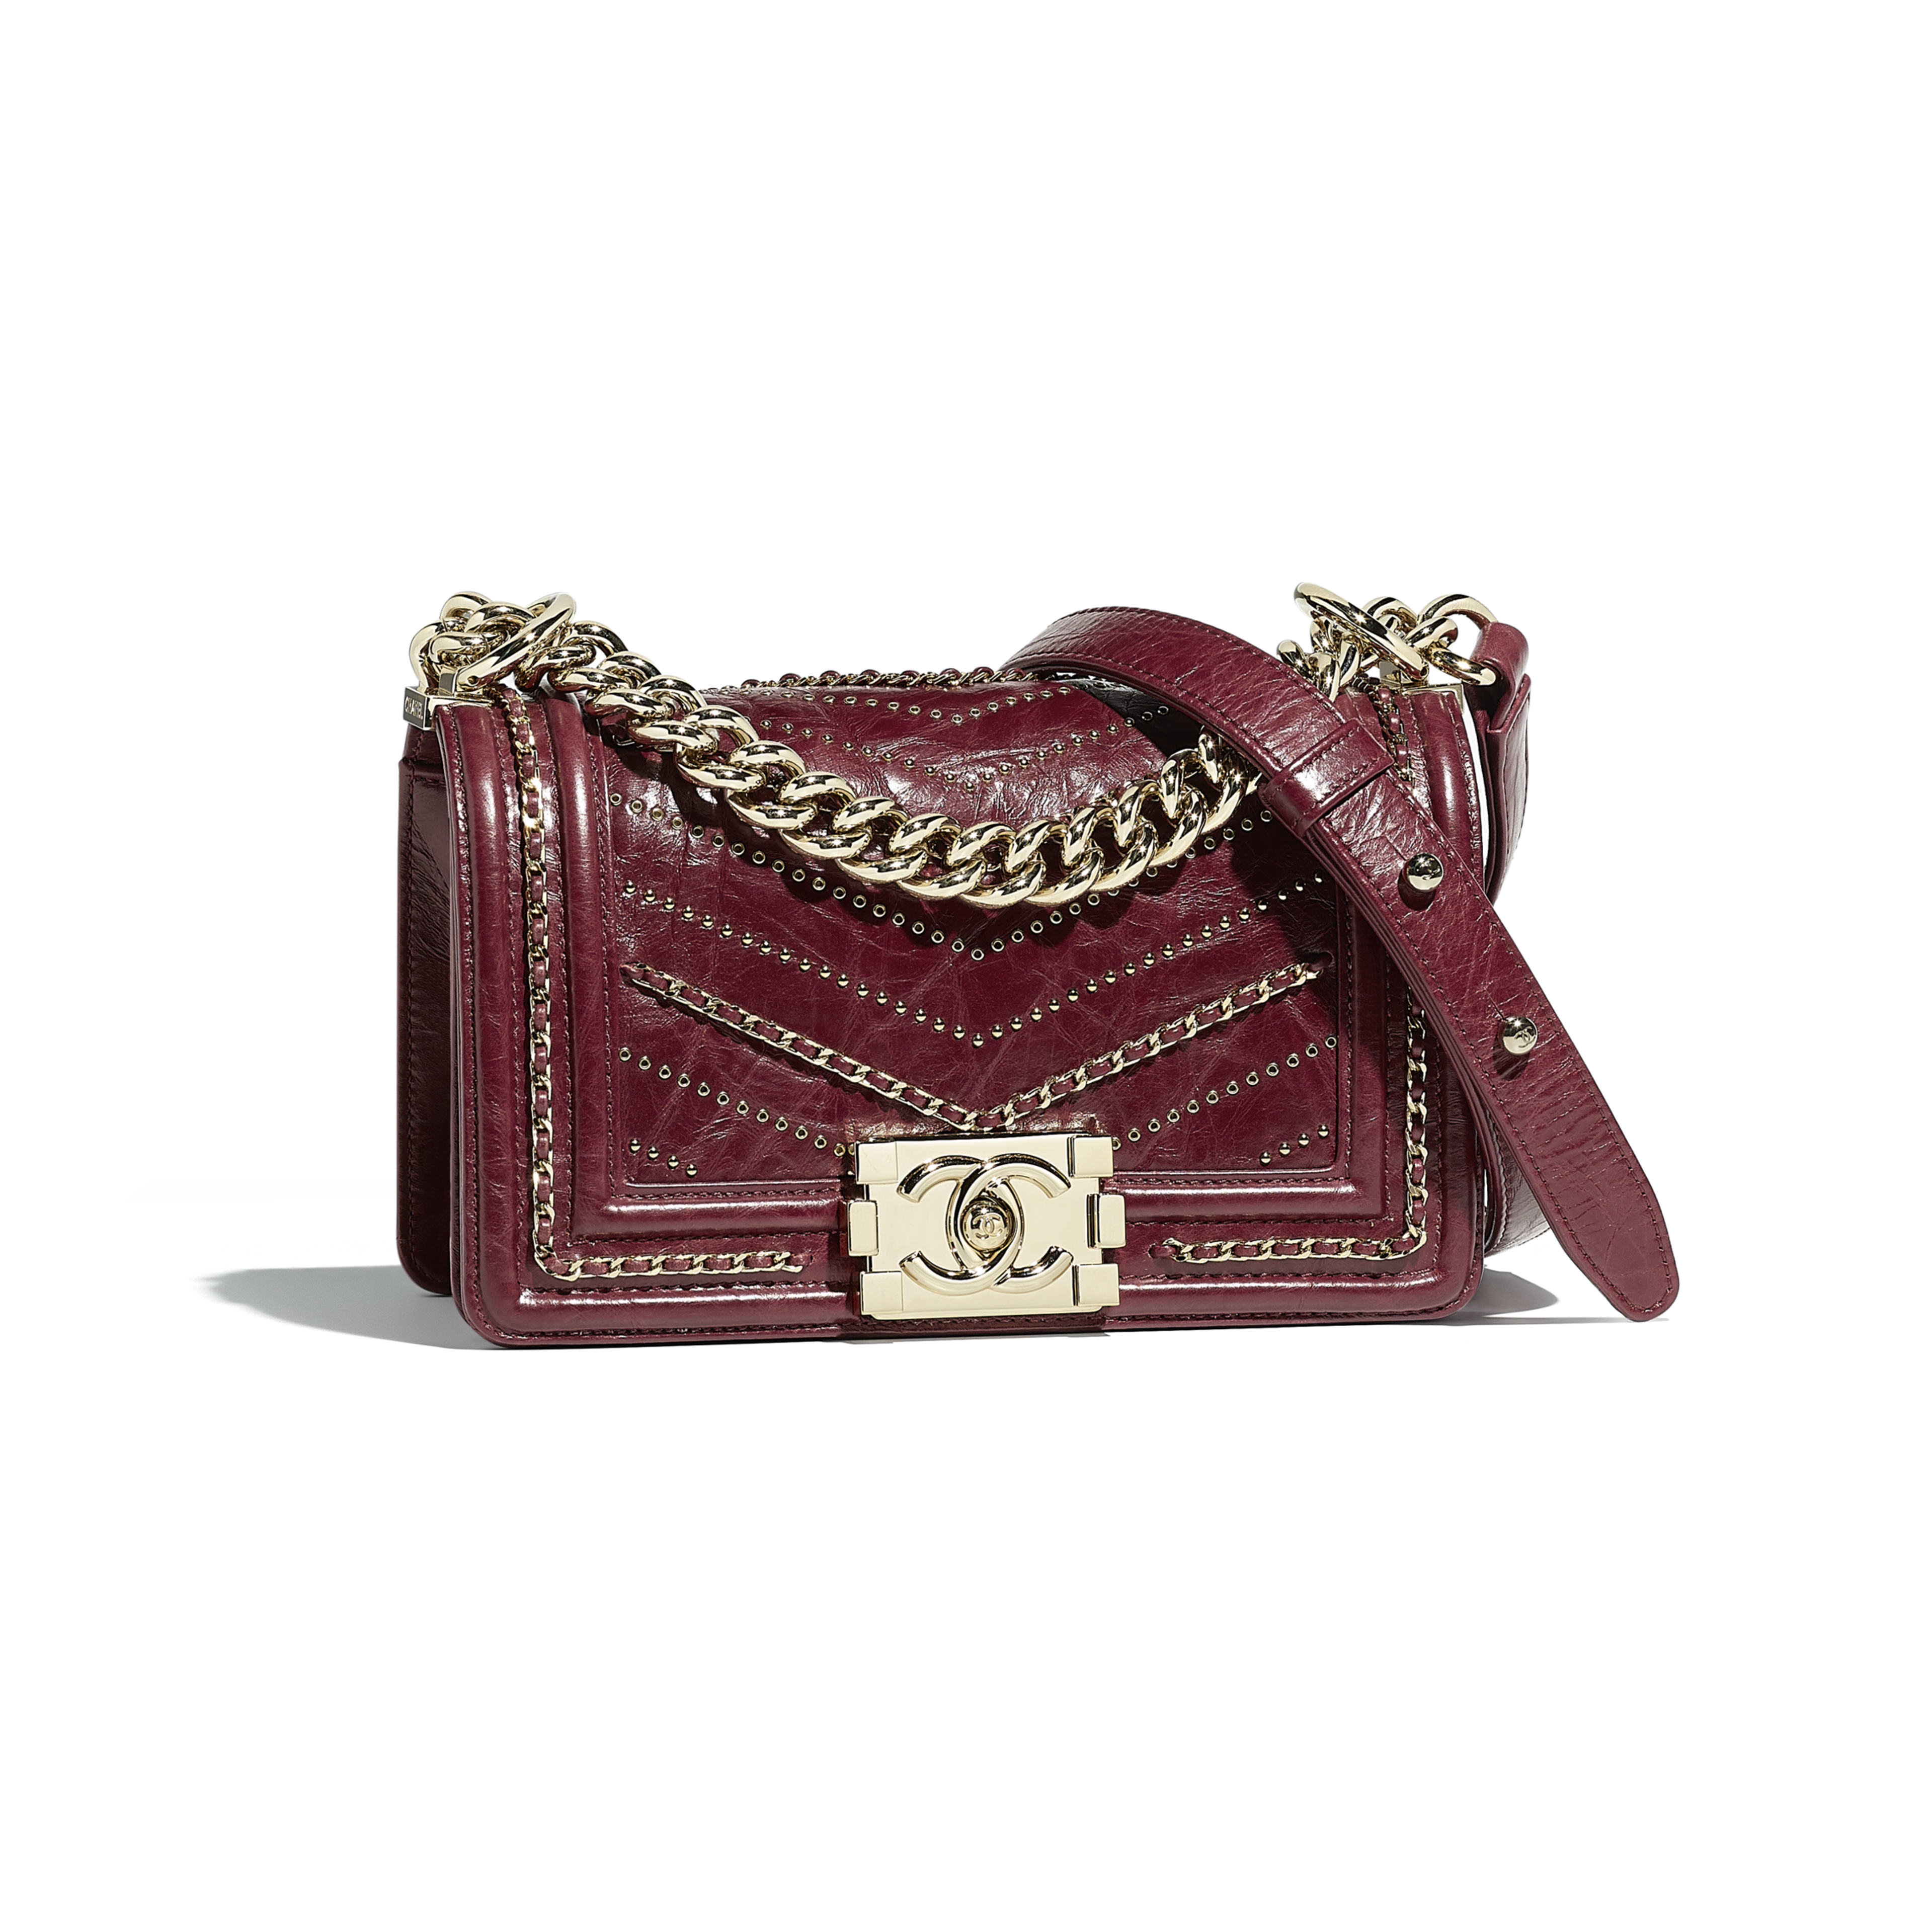 Small BOY CHANEL Handbag Crumpled Calfskin & Gold-Tone Metal Red -                                  view 1 - see full sized version